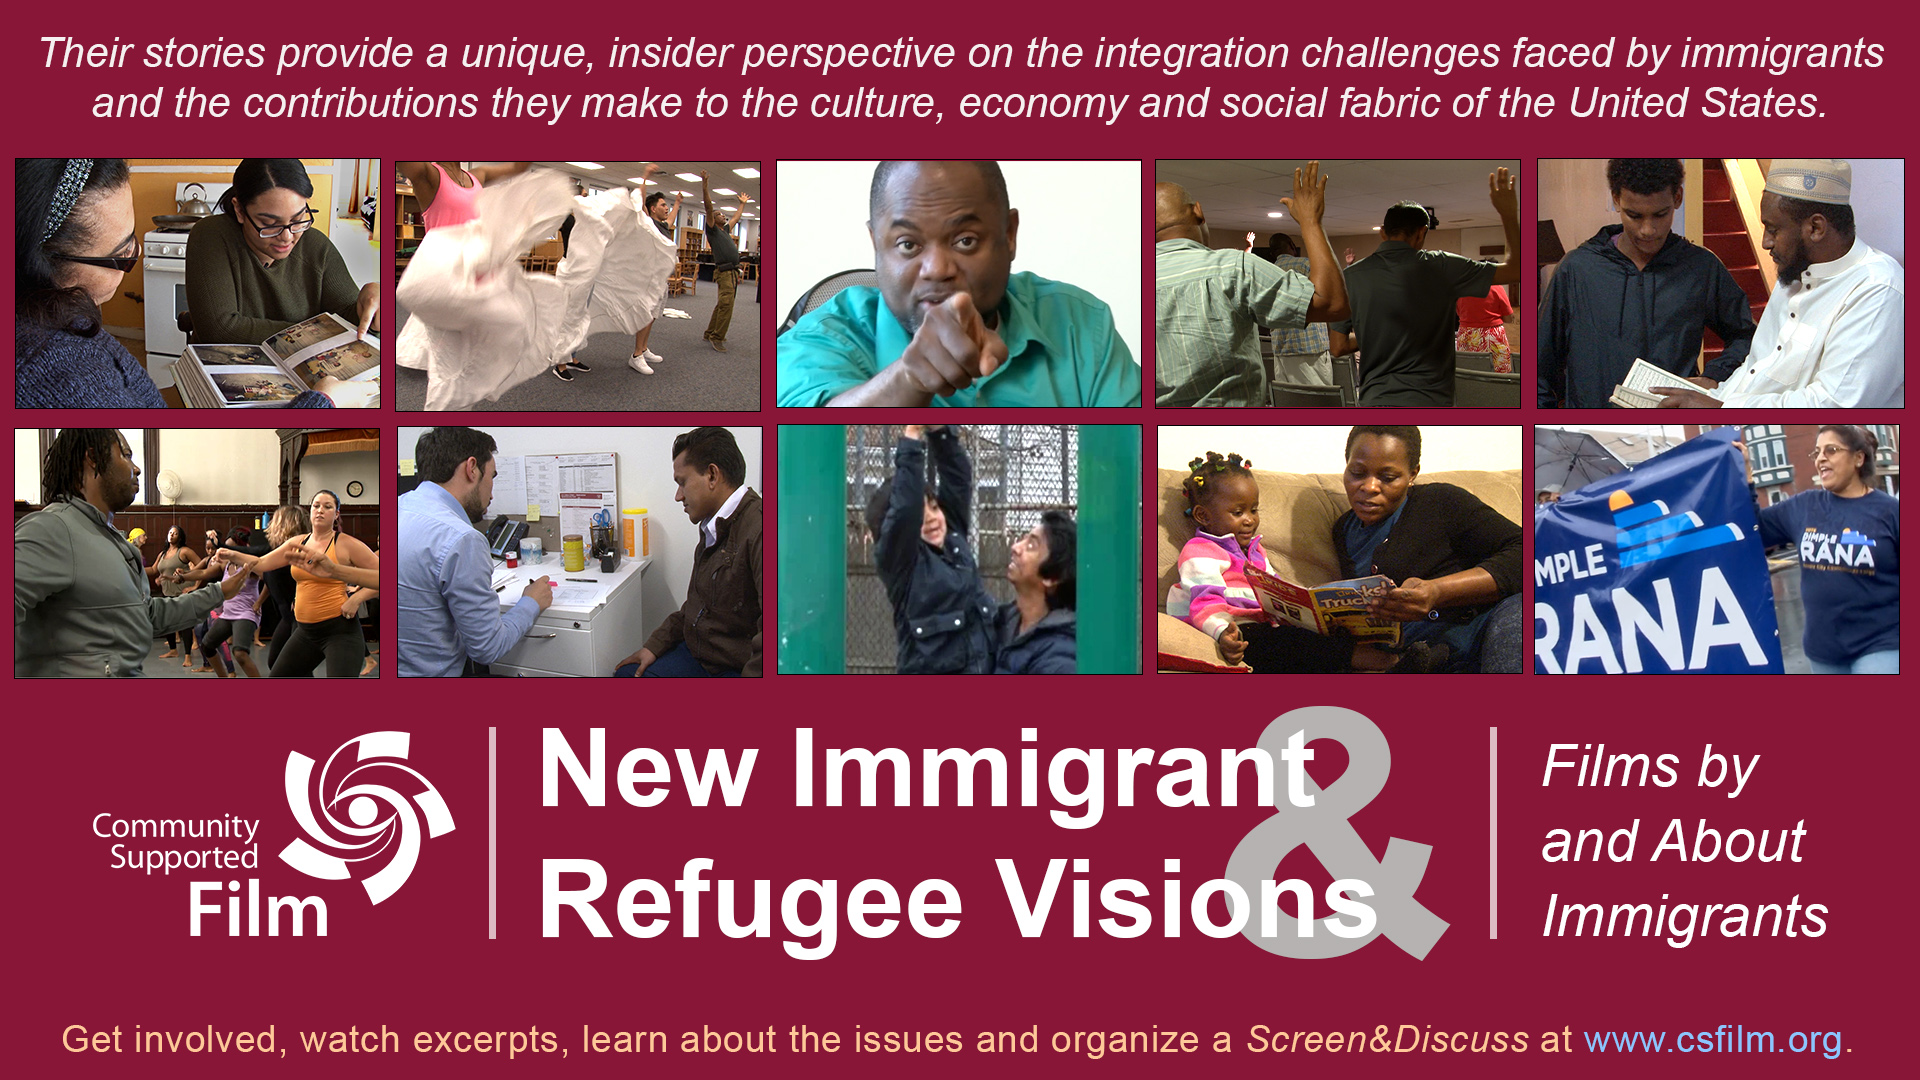 JP Movie Night's NIRV Screen&Discuss deepens audience's understanding of challenges and risks facing immigrants